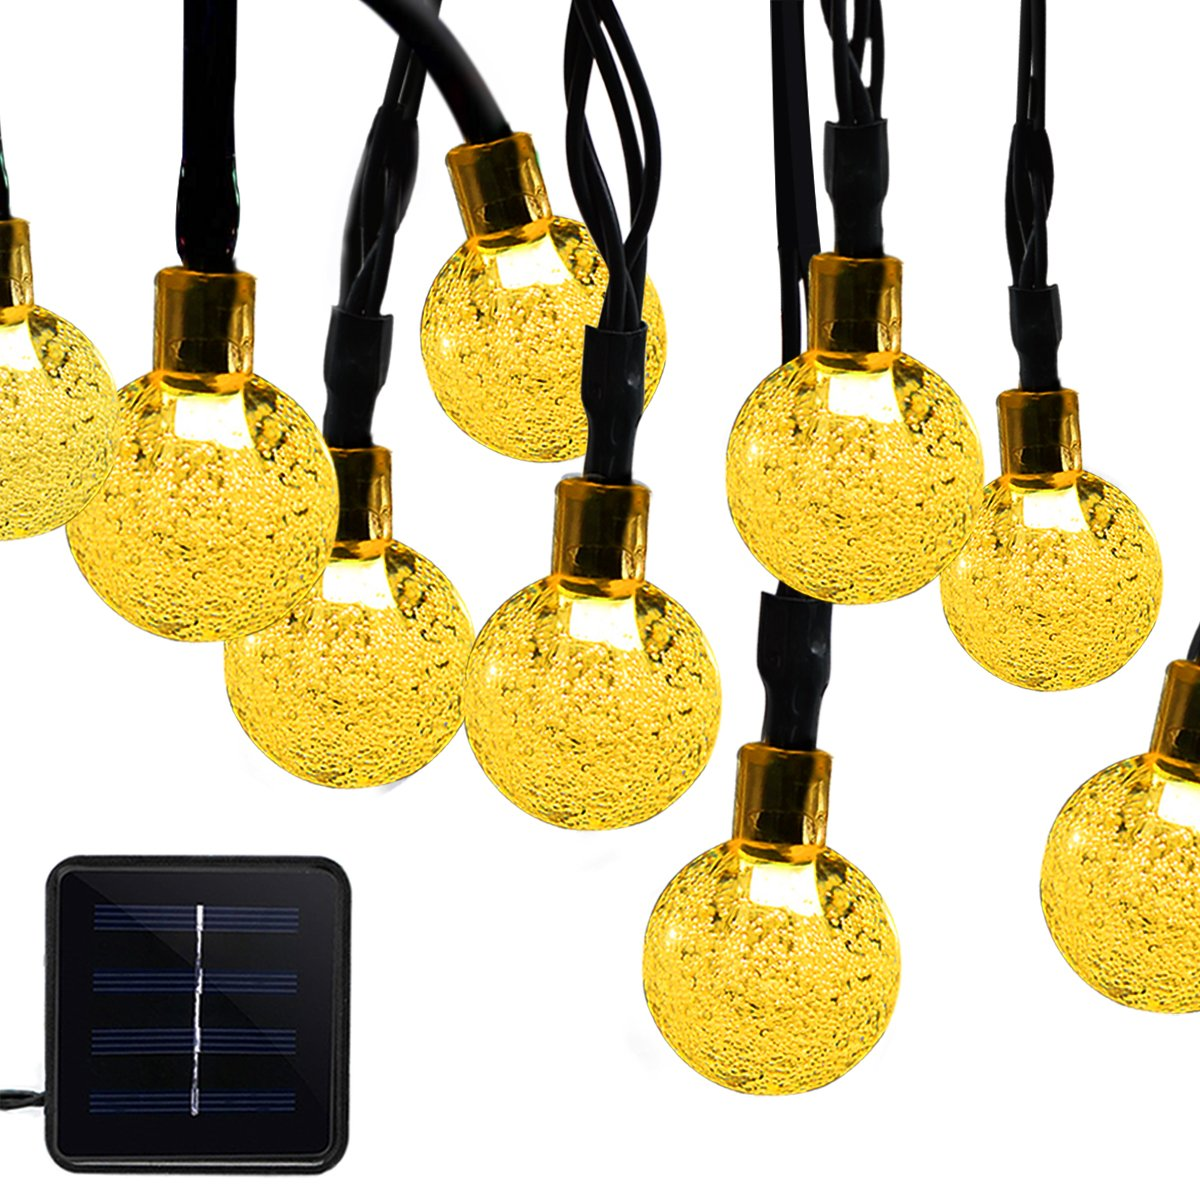 Outdoor String Lights   Amazon.com   Lighting & Ceiling Fans ...:Top rated,Lighting